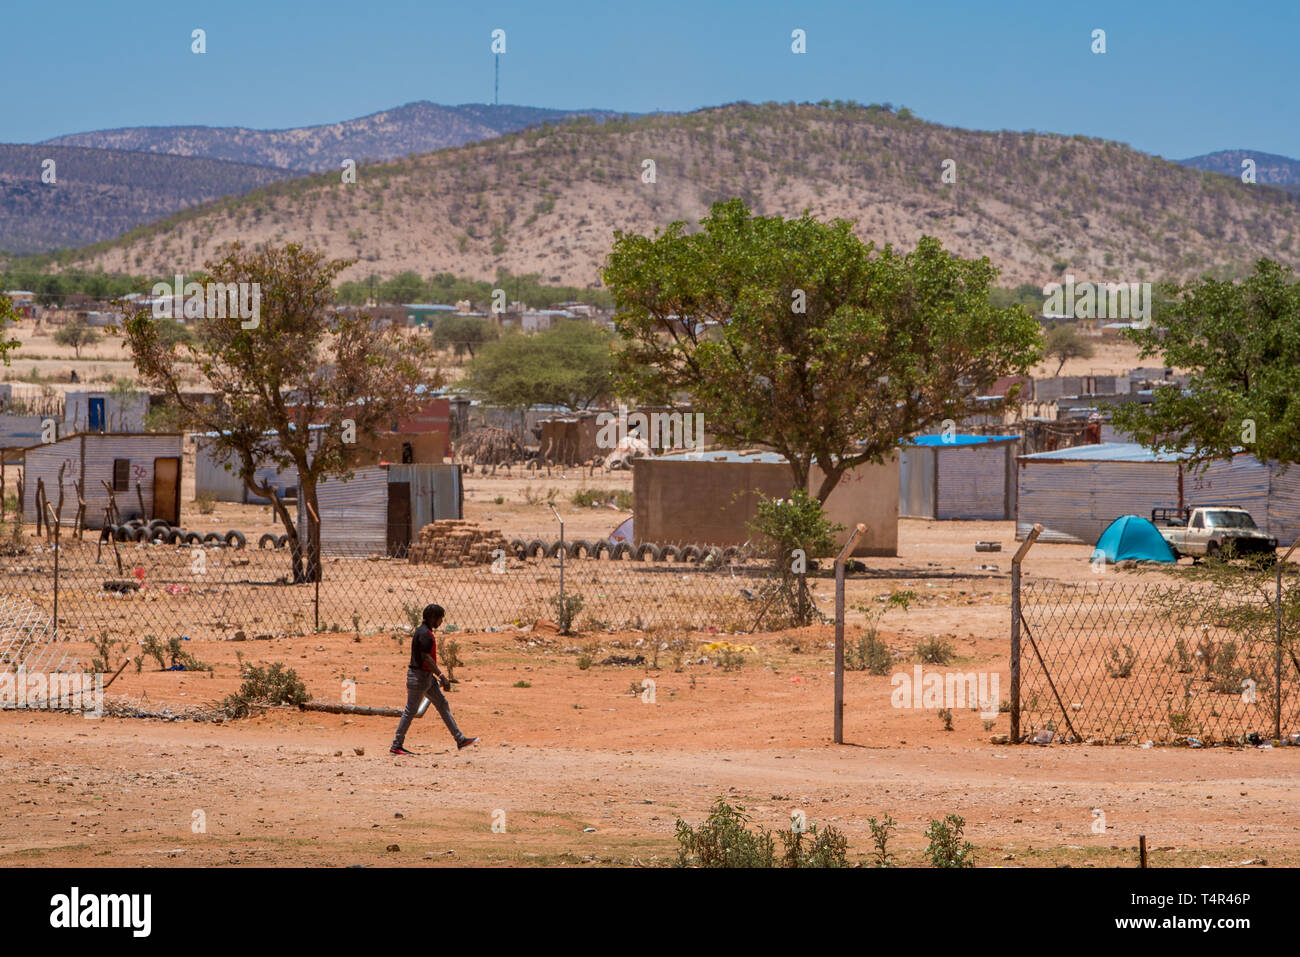 Opuwo/Namibia - November 6 2018: A man walking in the desert village, with shacks and hills in the background - Stock Image